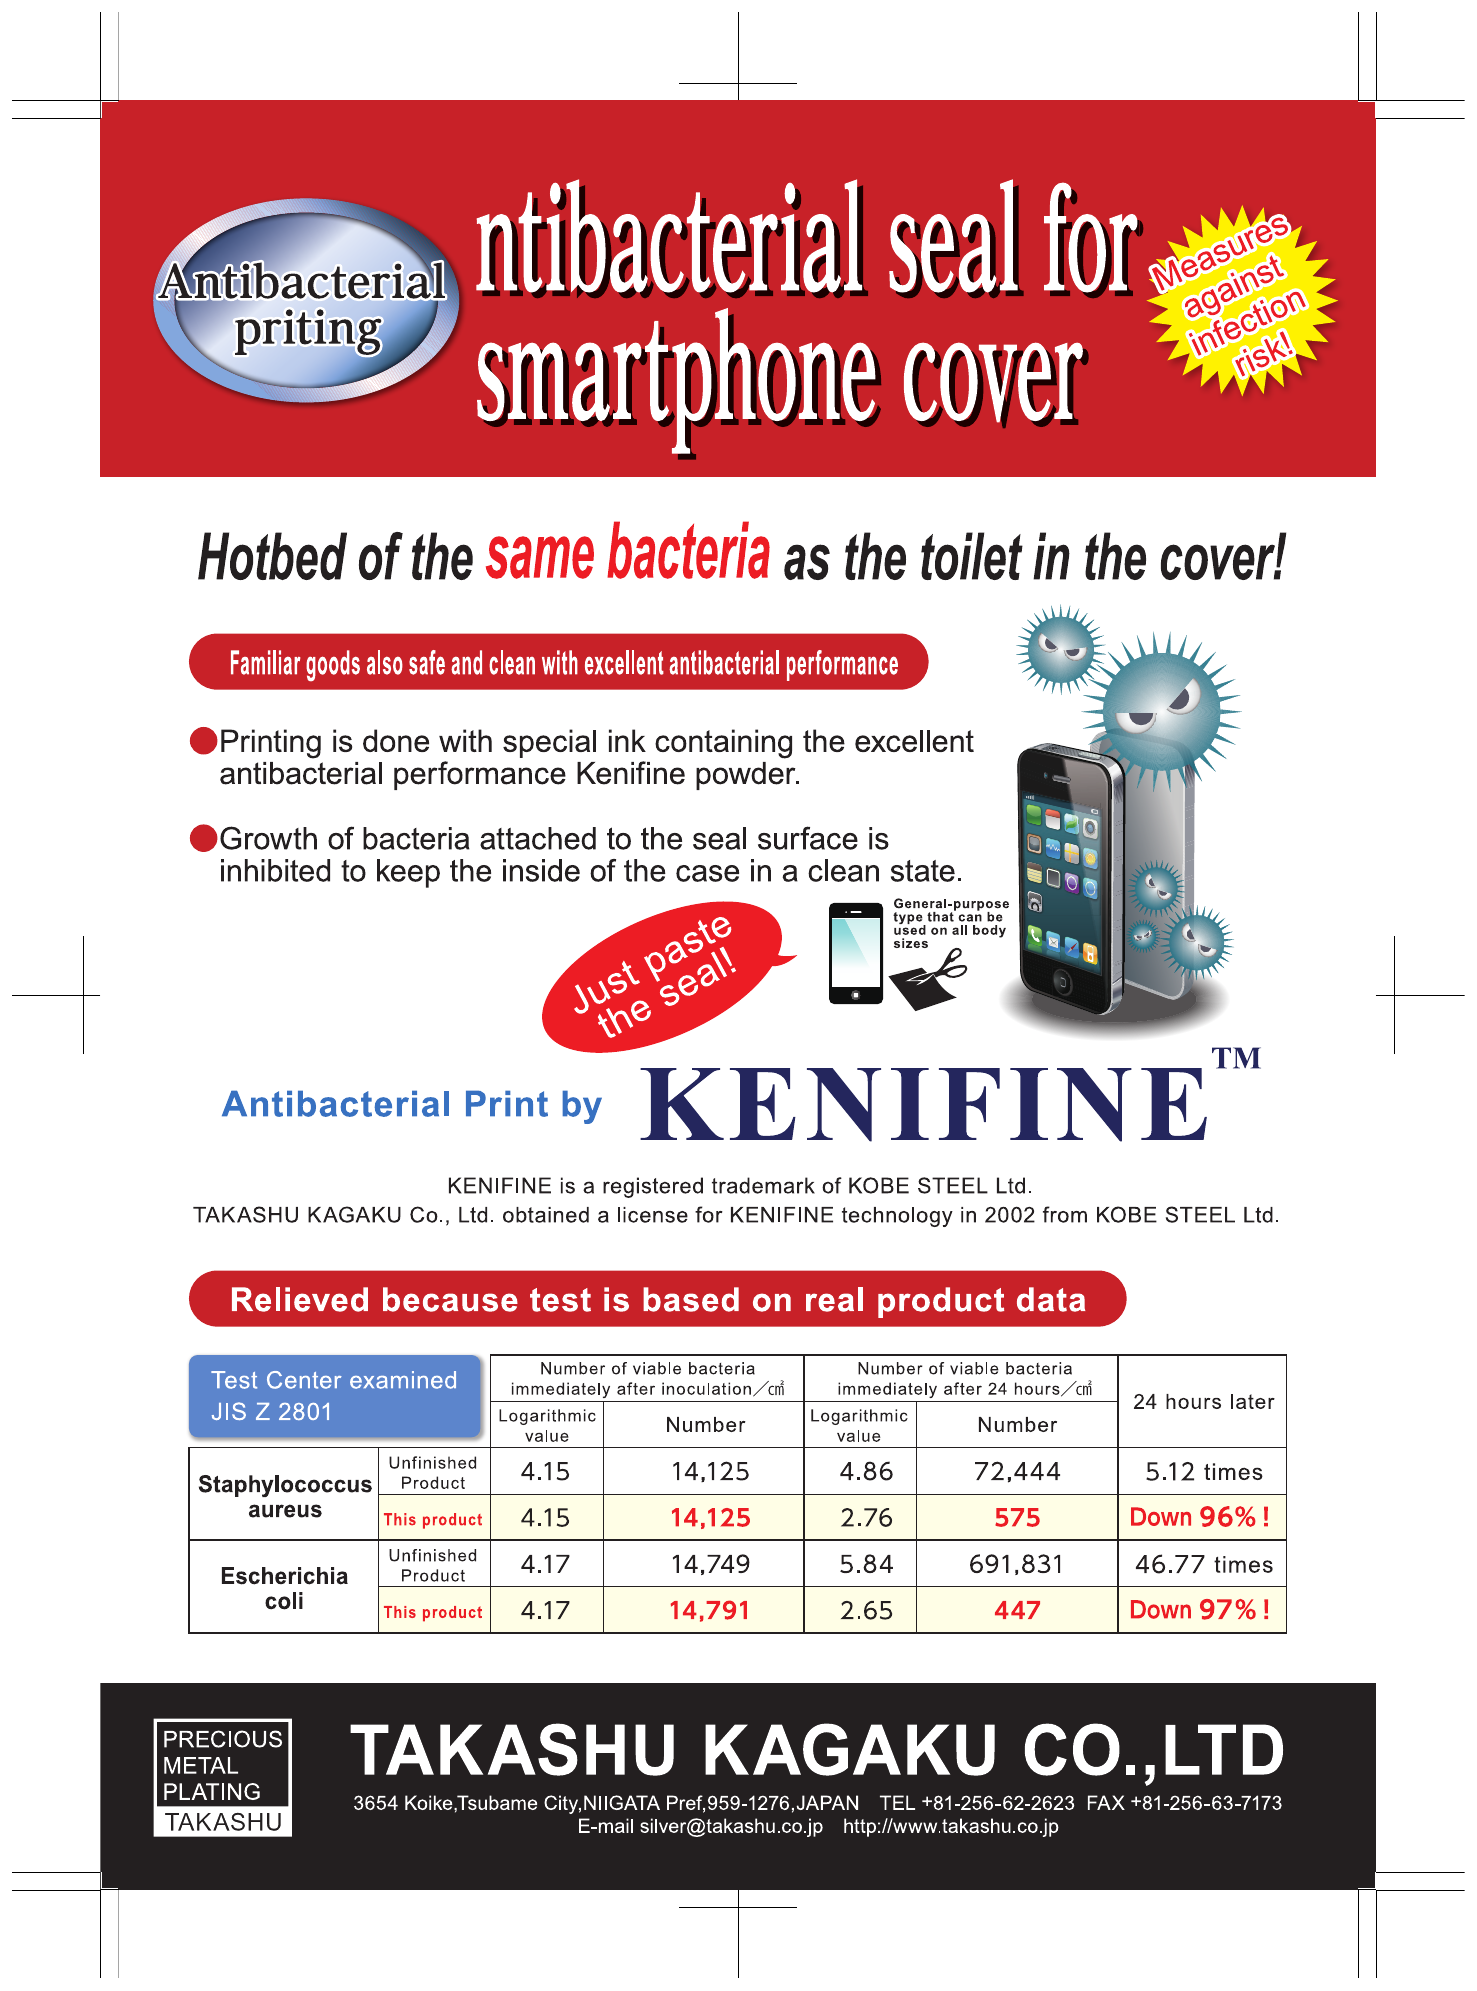 【ENGLISH】Antibacterial seal for smartphone cover